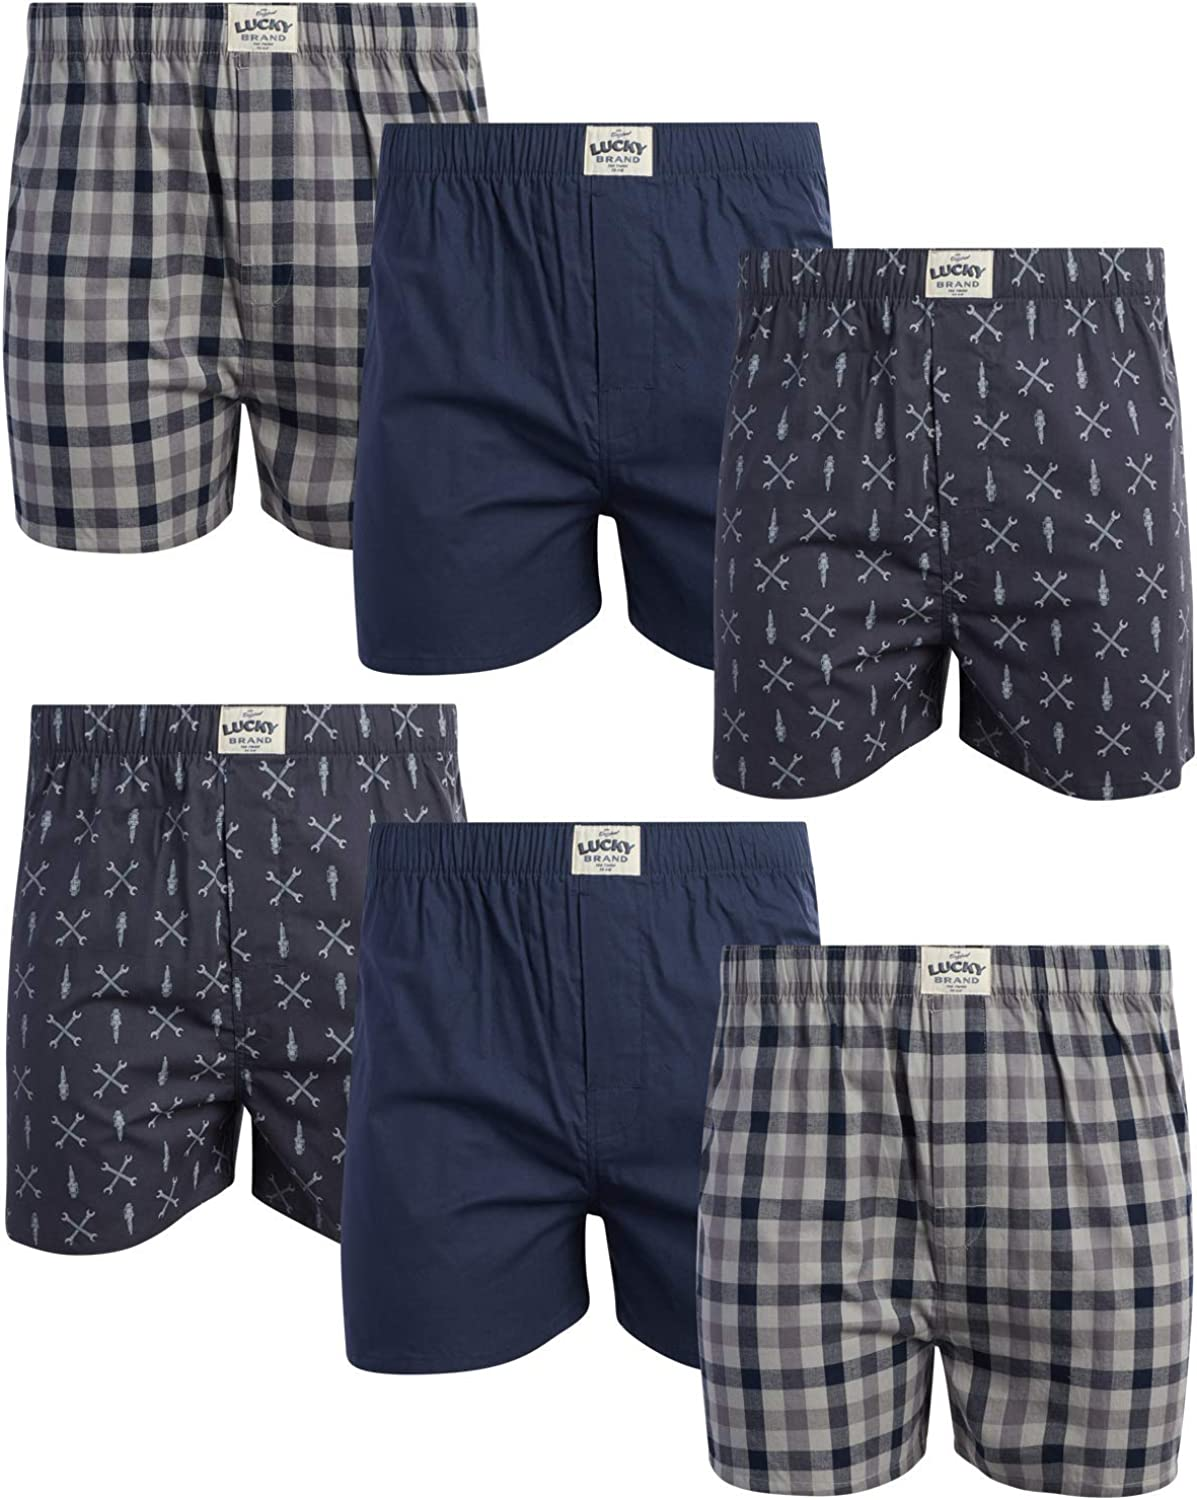 Lucky Brand Men?s Woven Cotton Boxer with Functional Fly (6 Pack), Size